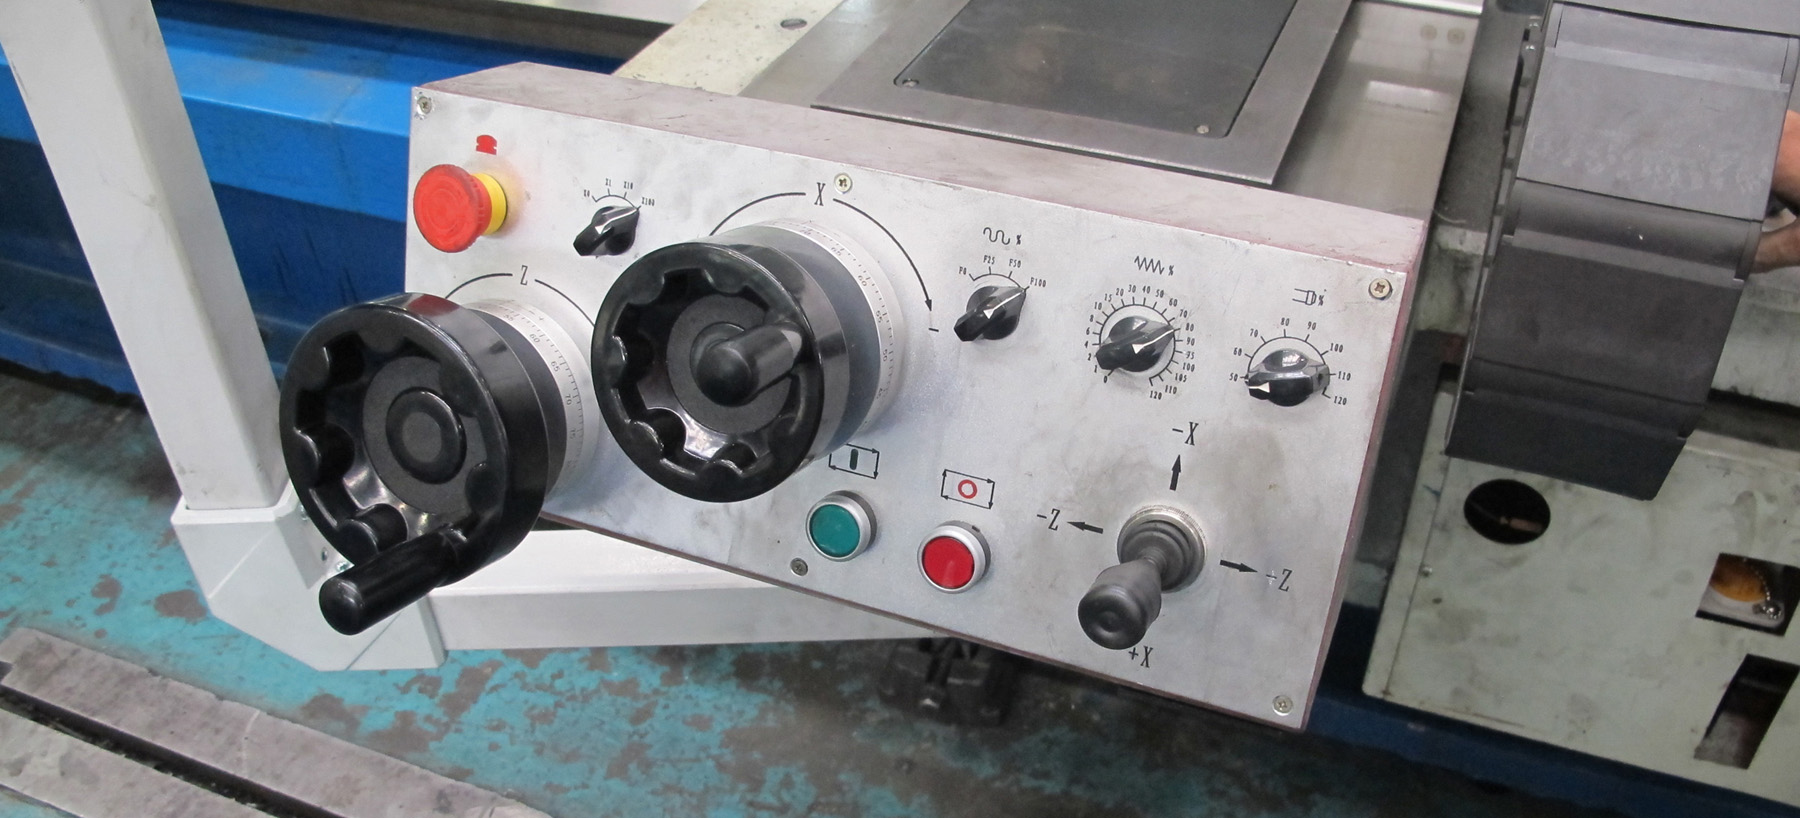 """NEW, TVAN HS36-300 SIMPLE CNC HOLLOW SPINDLE LATHE WITH 14"""" BORE"""